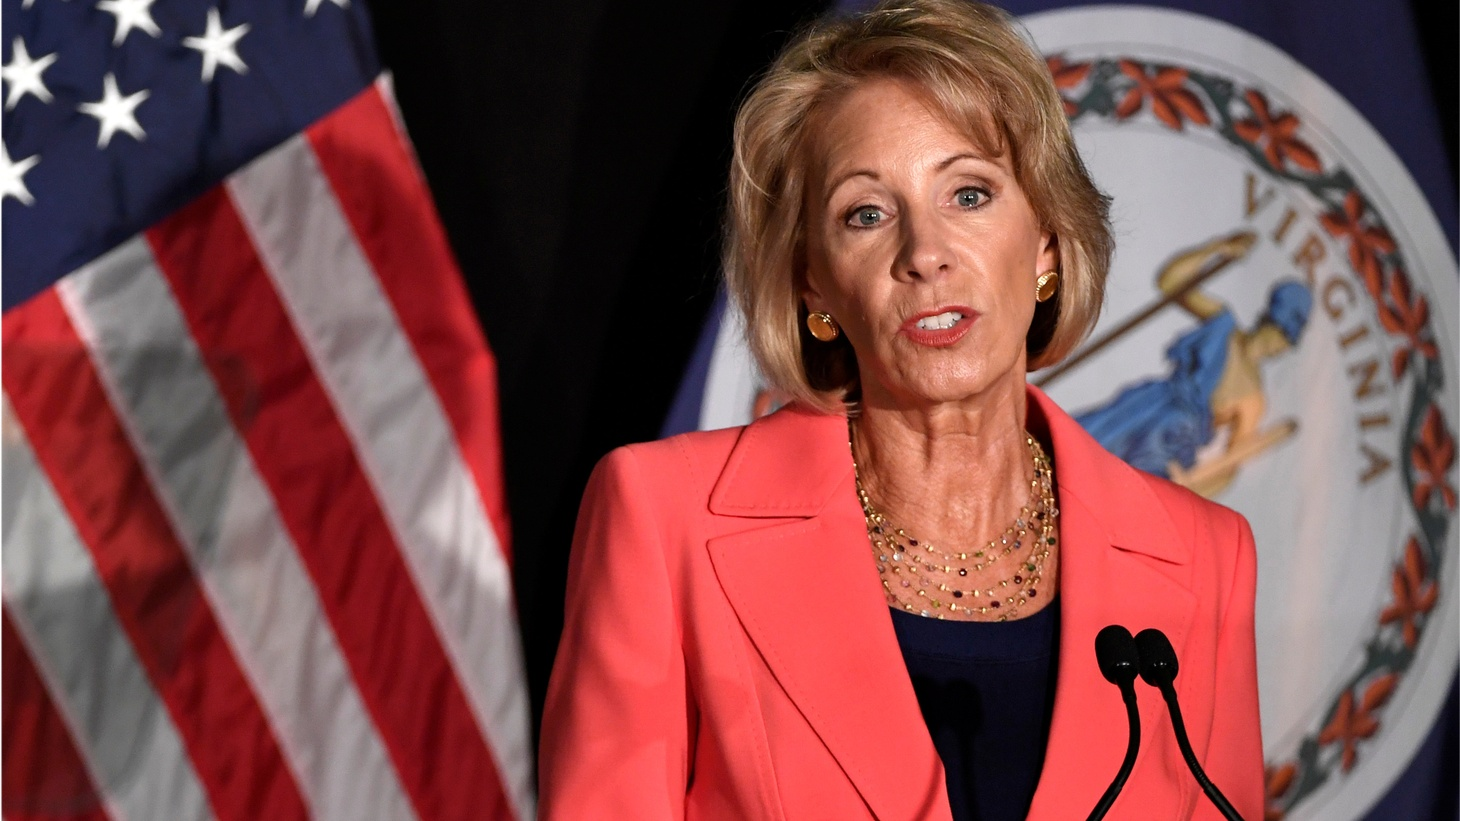 Education Secretary Betsy DeVos said the Obama administration used Title IX -- the campus gender equality law -- to coerce and intimidate universities to overreach when handling sex assault cases. She pointed to a case involving a former USC football player who was kicked out of school after a Title IX investigation.